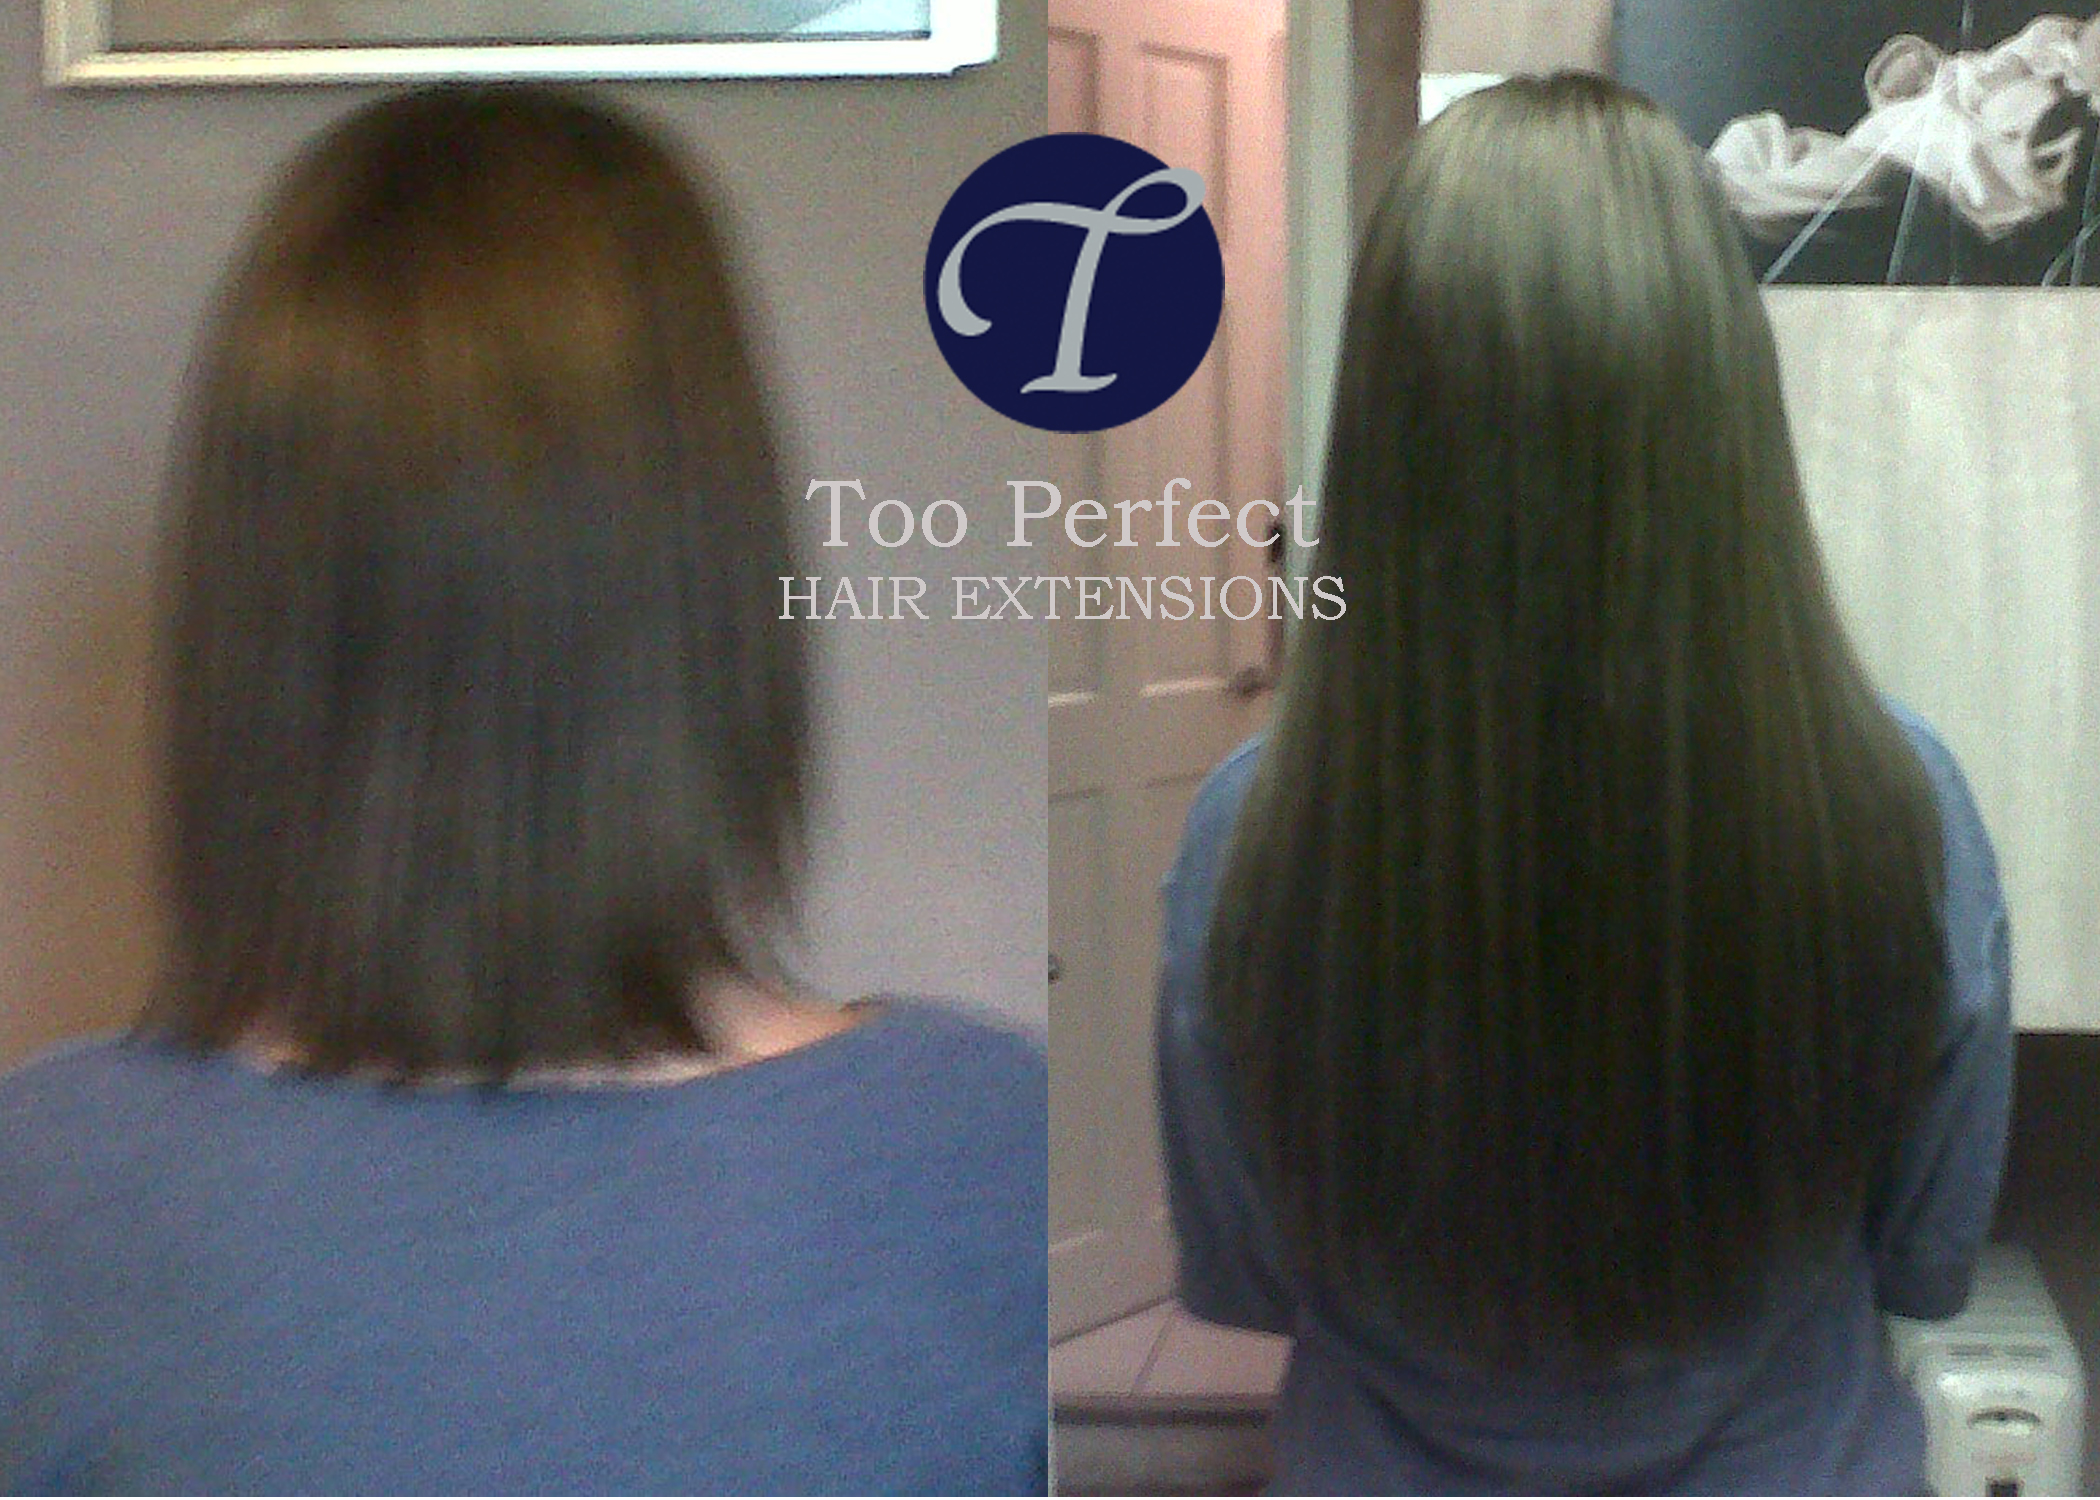 Too Perfect Luxury Hair Extensions Salon Walsall Before And